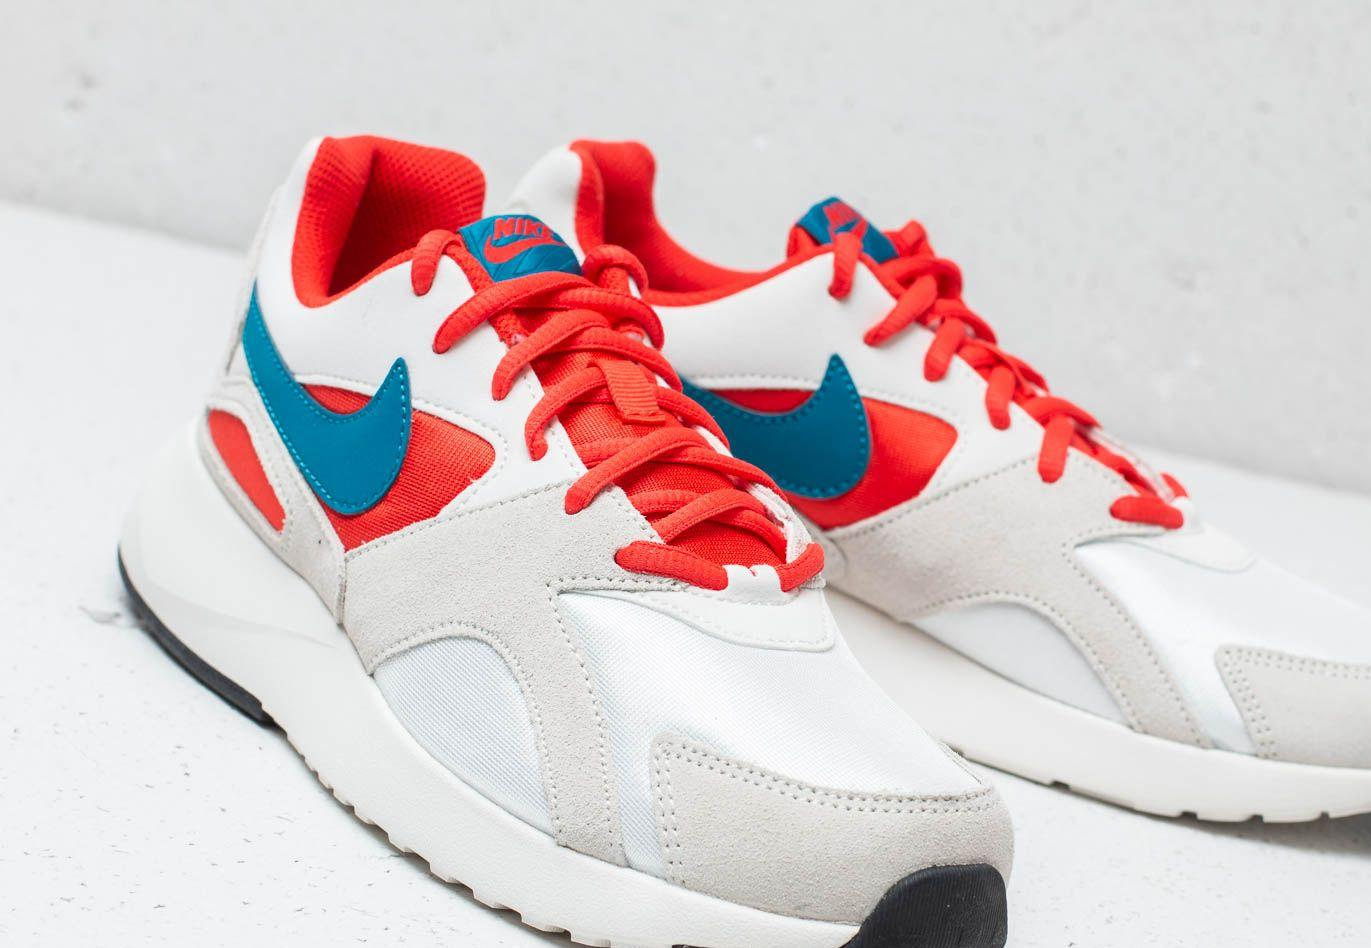 La nuestra Marco de referencia intelectual  Nike Pantheos Trainers in Red (White) for Men - Lyst